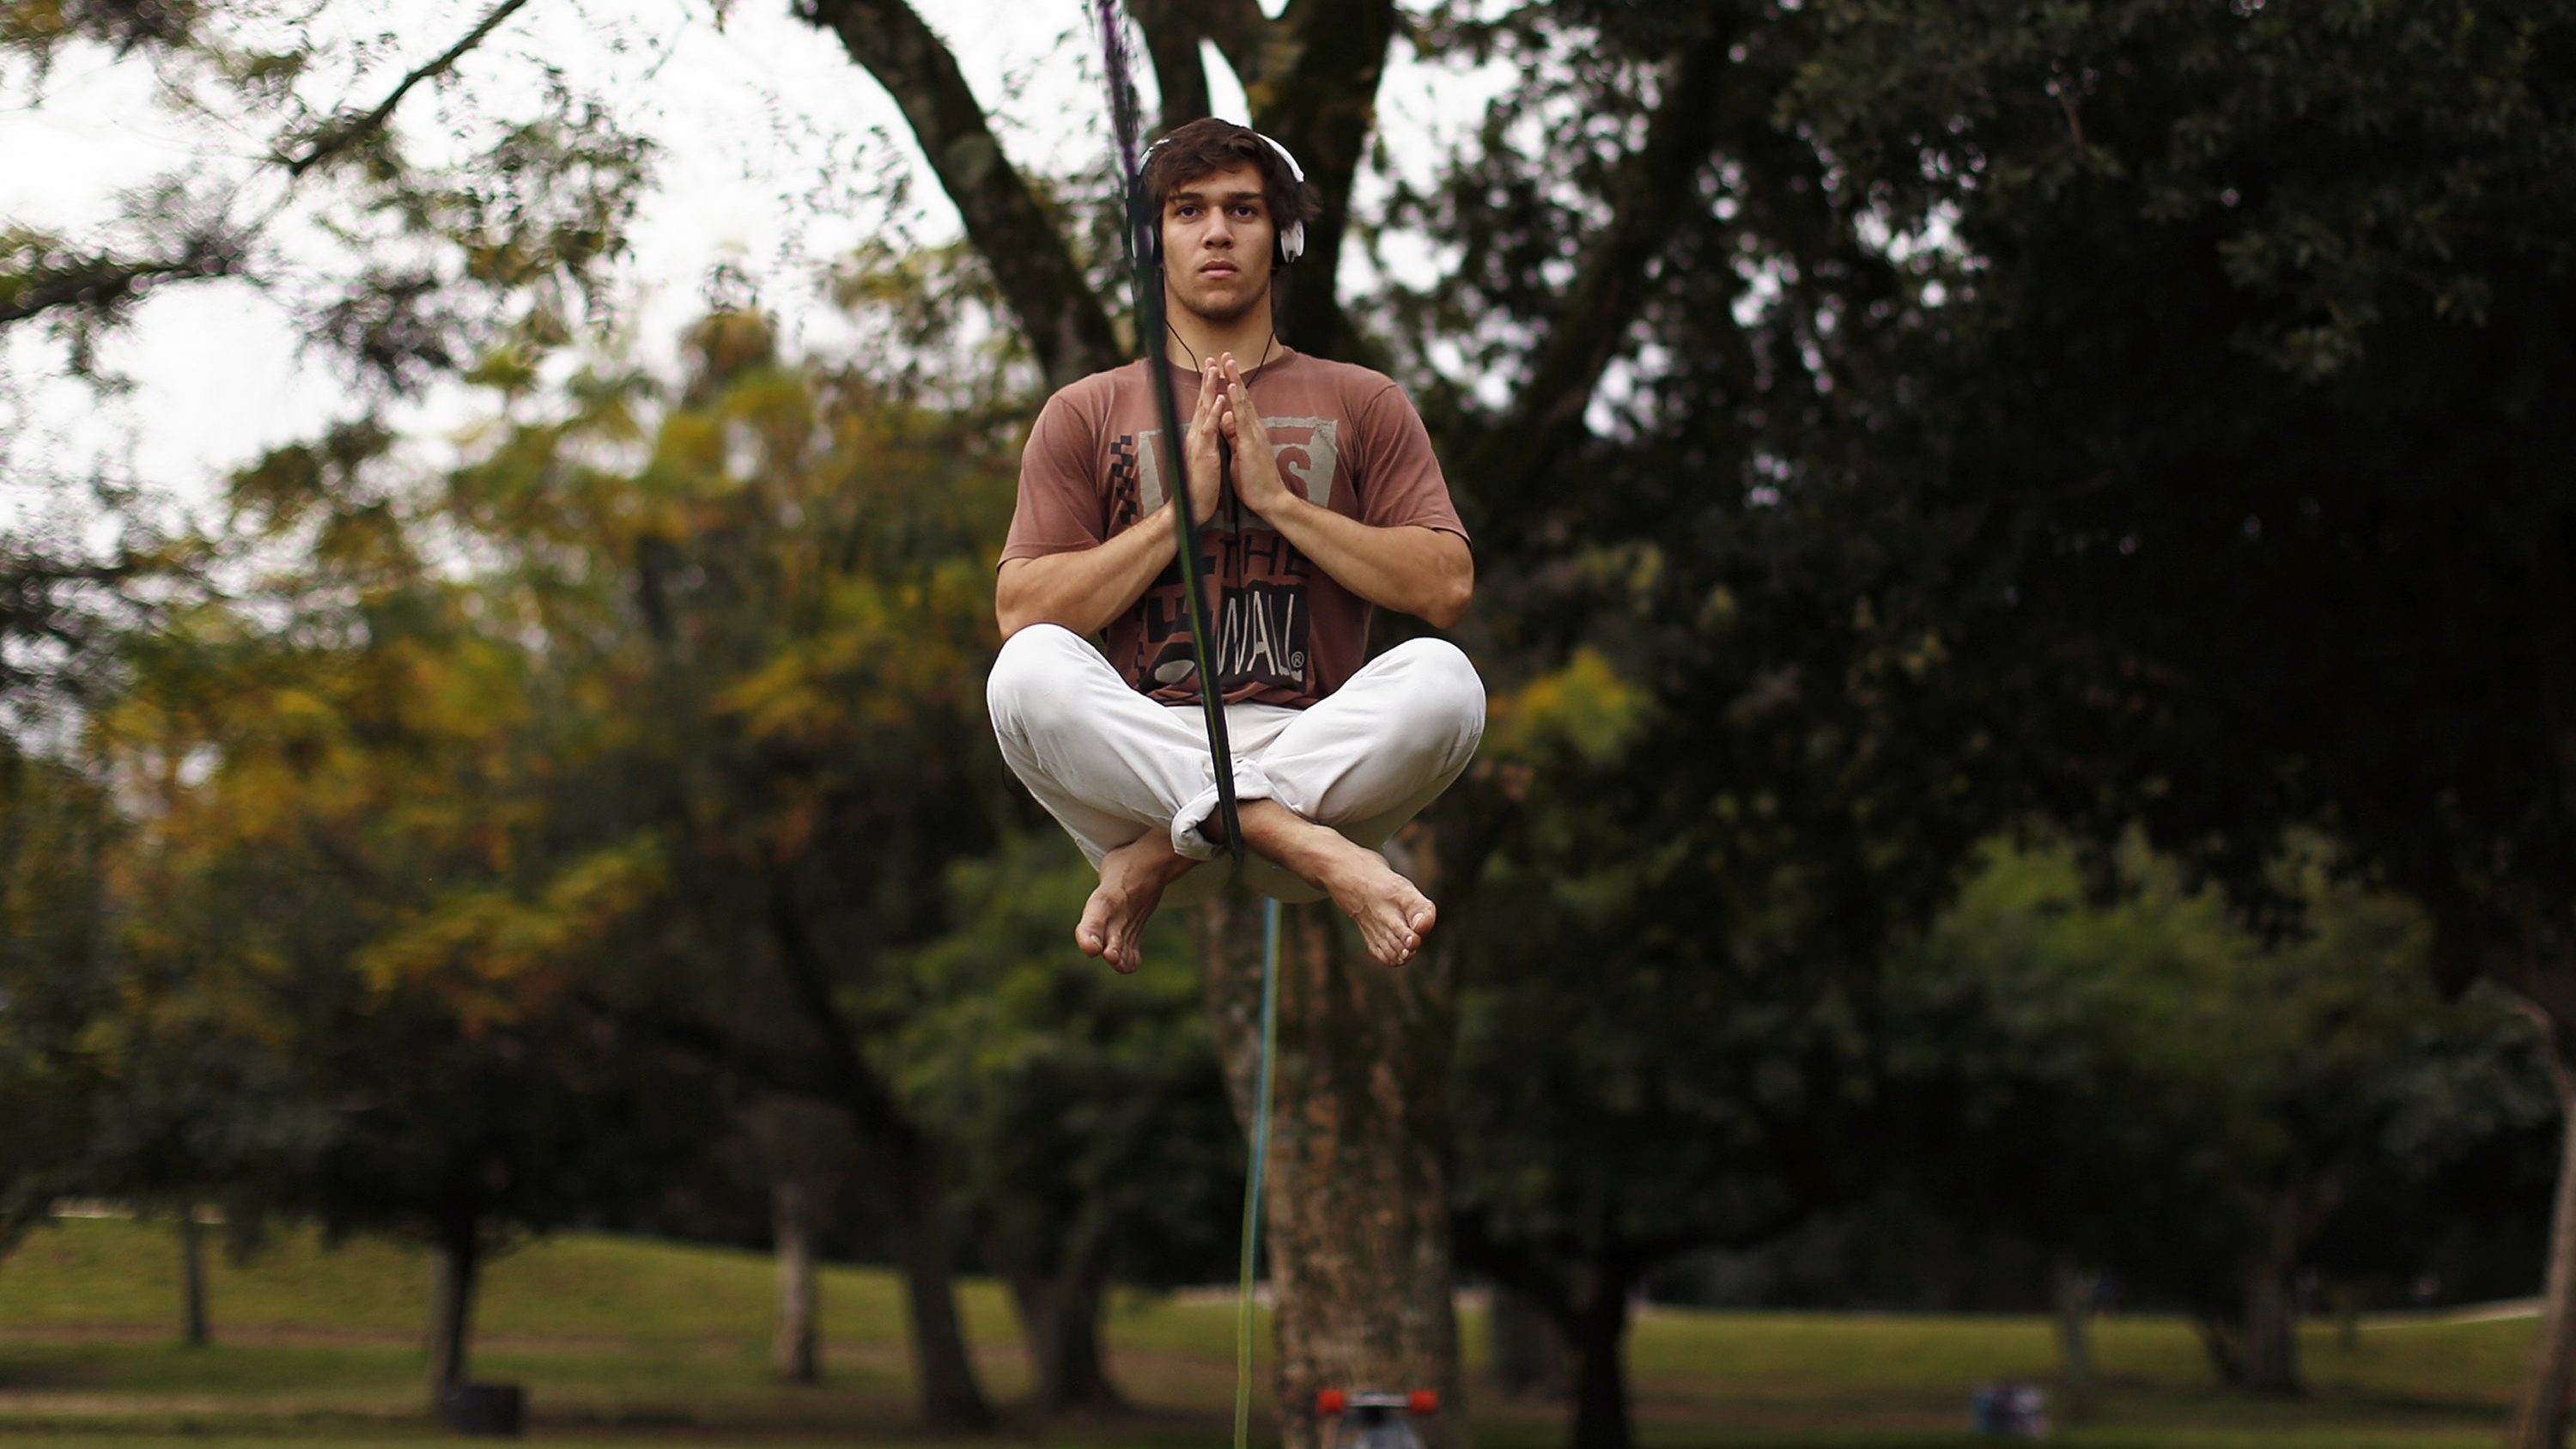 Vitor Haas concentrates as he sits on a rope before tightrope walking near the Beira-Rio stadium in Porto Alegre June 16, 2014. In a project called 'On The Sidelines' Reuters photographers share pictures showing their own quirky and creative view of the 2014 World Cup in Brazil.